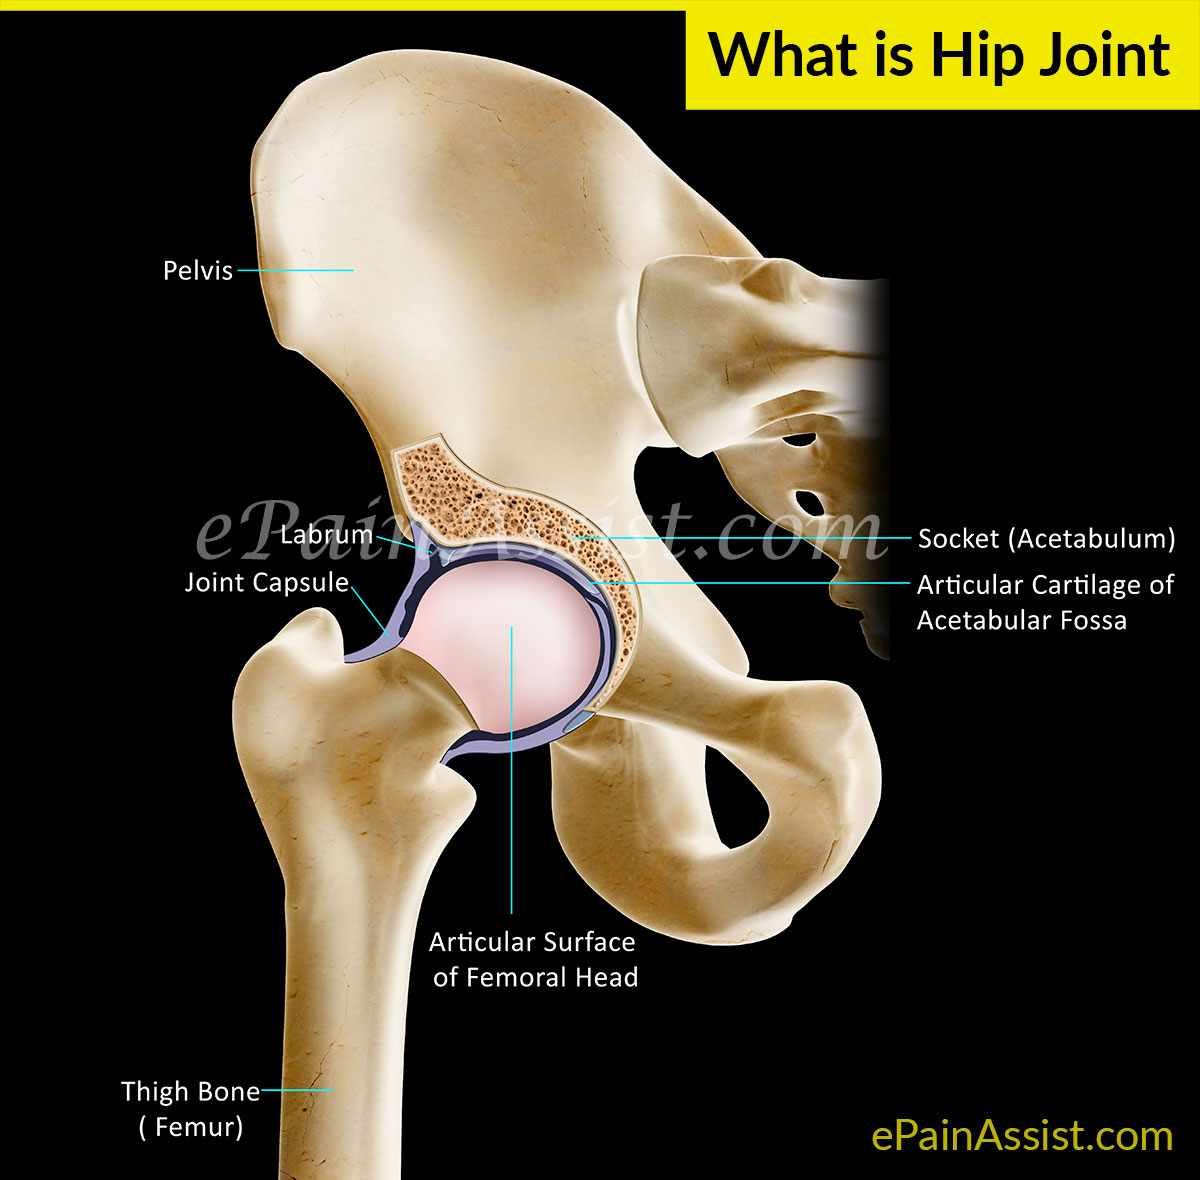 What Causes Hip Joint Pain Or Acetabulofemoral Joint Pain